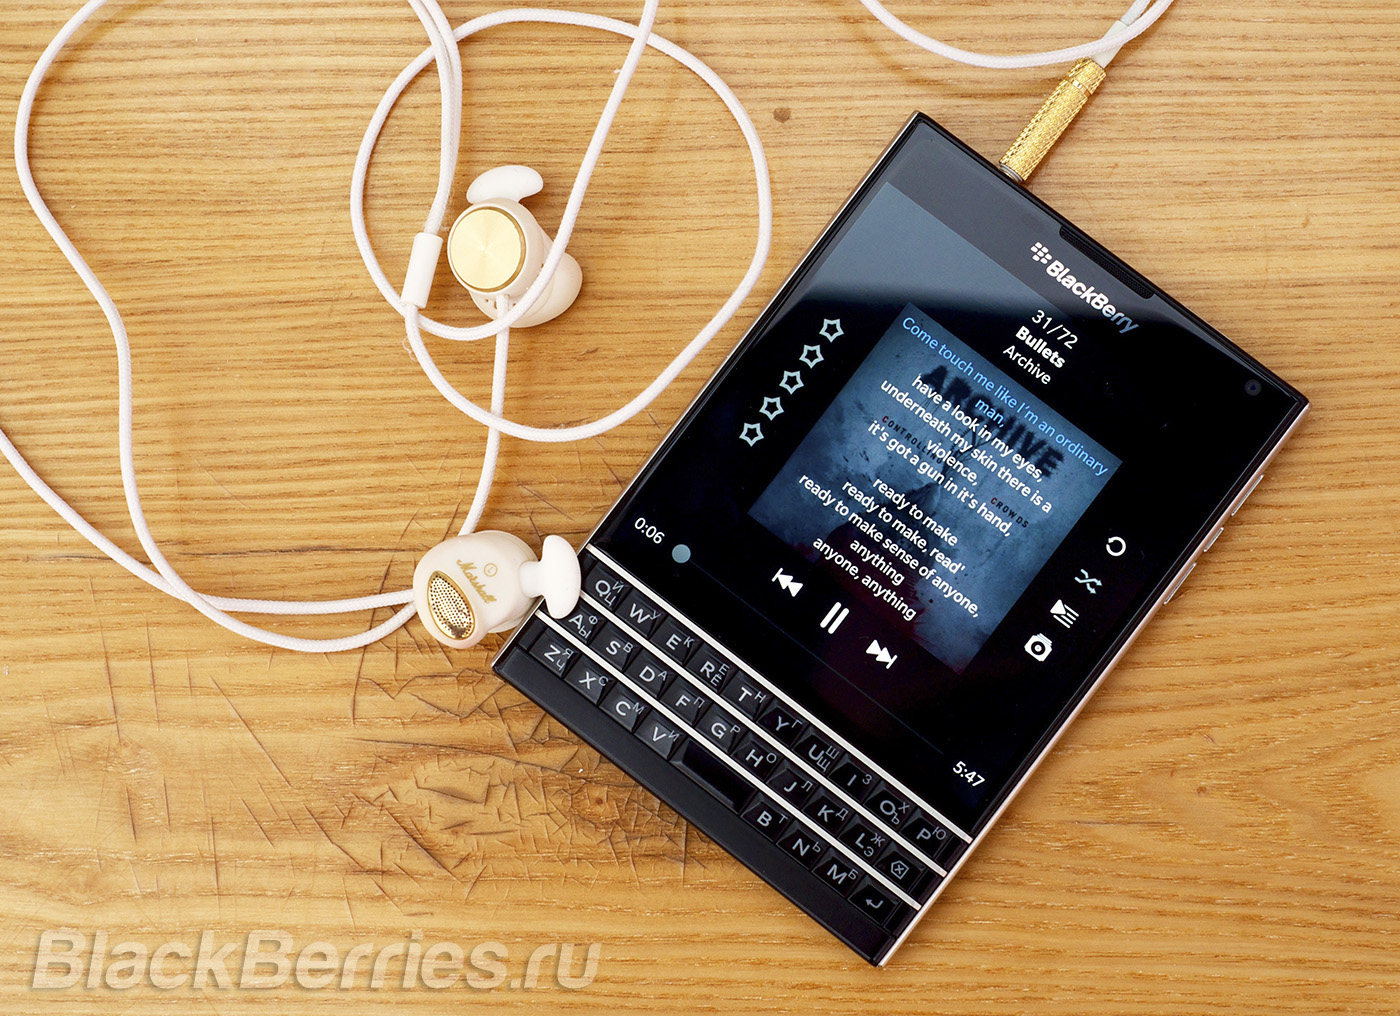 BlackBerry-Passport-Apps-13-06-10